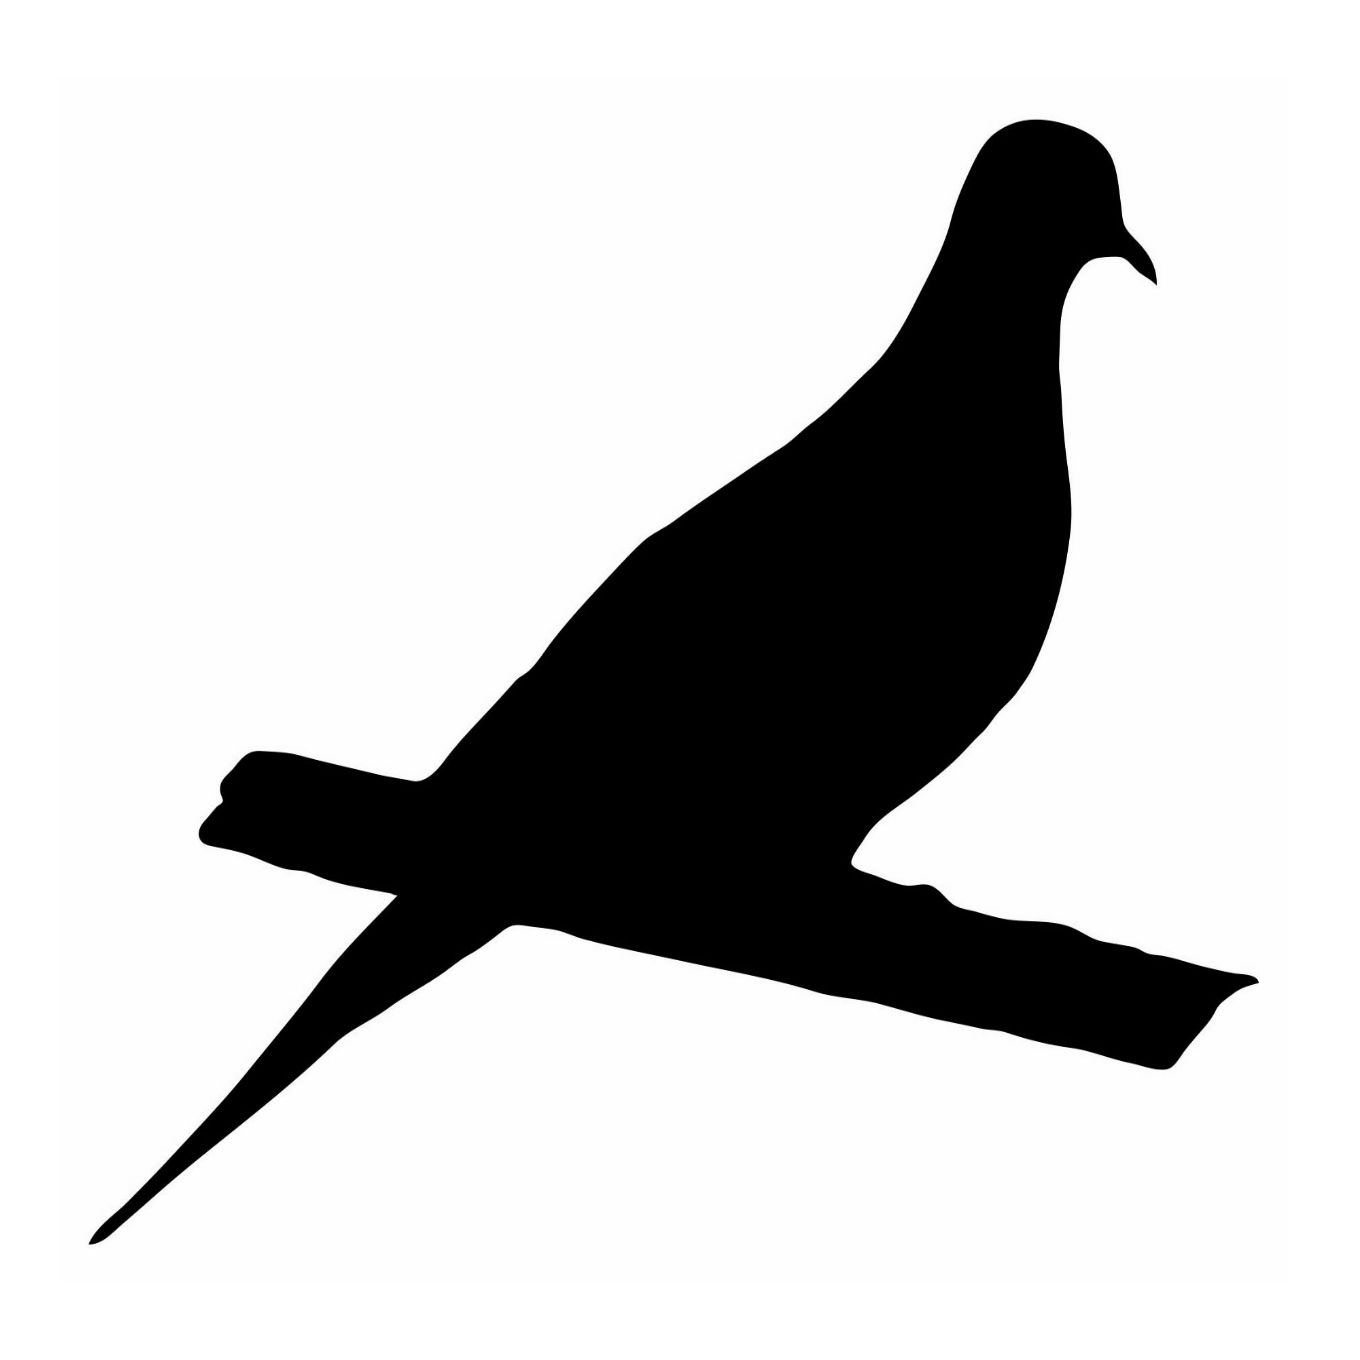 1360x1360 Cub Moudov Lizfuller Extracted Silhouette 2 Bird Academy